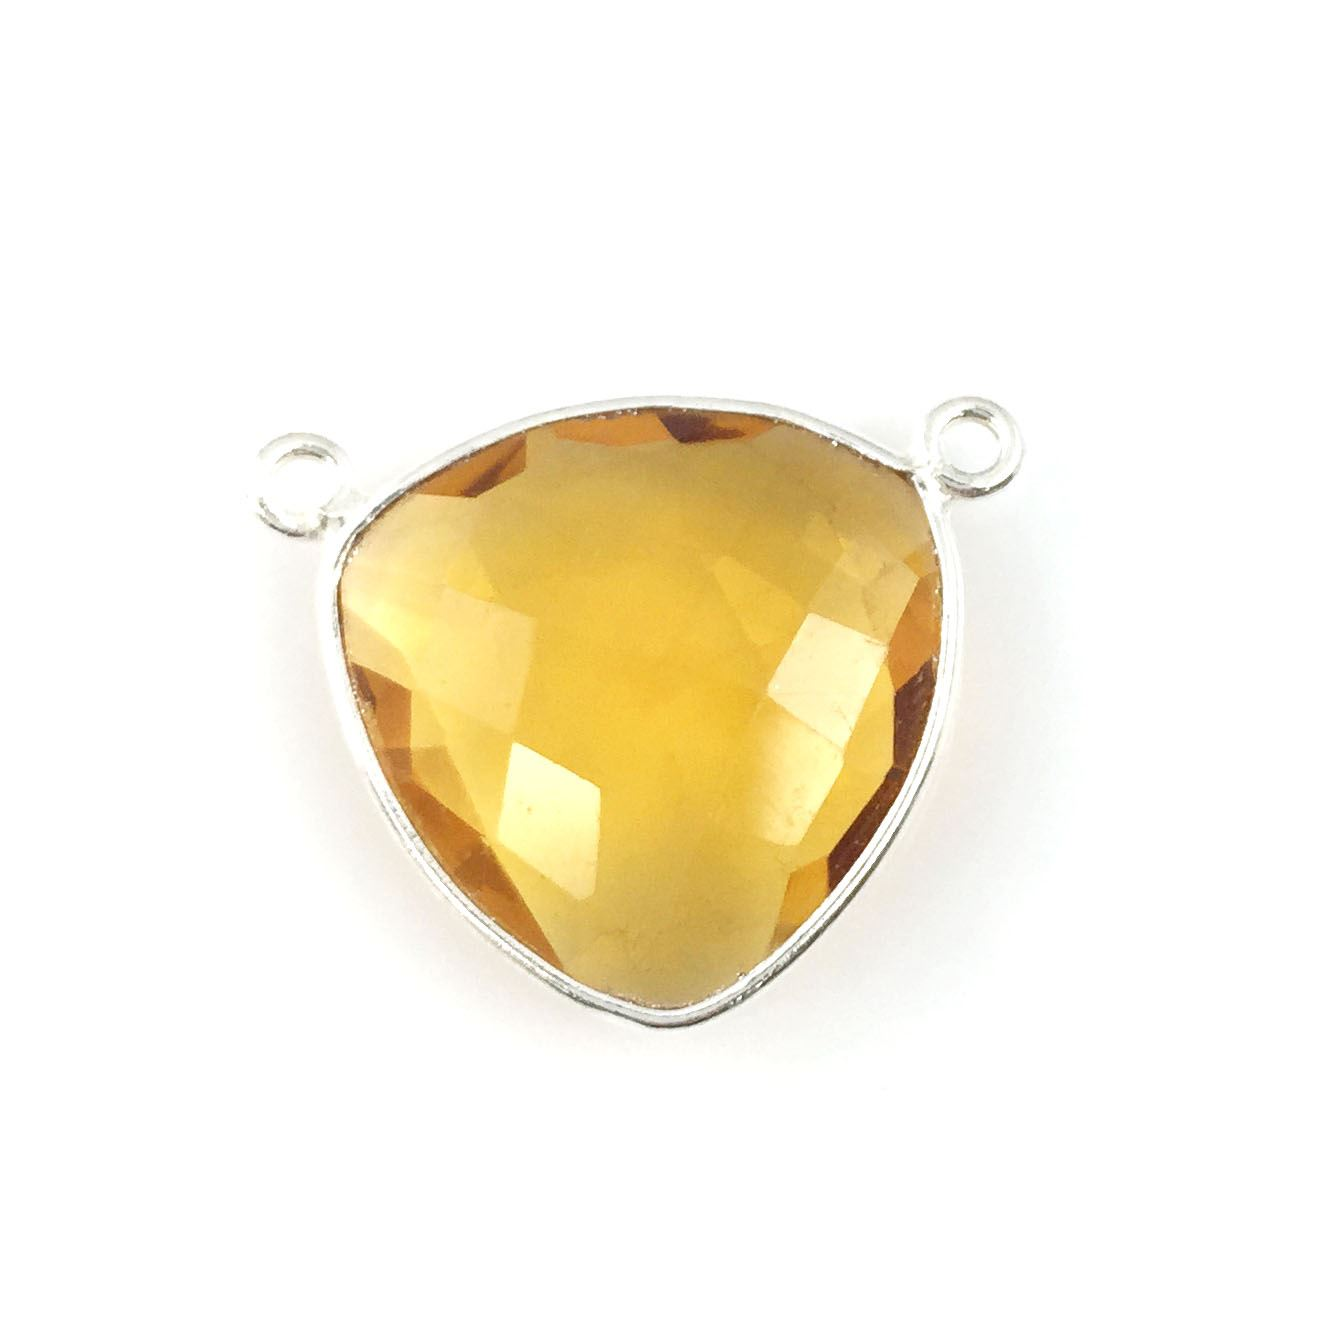 Bezel Gemstone Connector Pendant - Citrine Quartz - Sterling Silver - Large Trillion Shaped Faceted - 18 mm - 1 piece